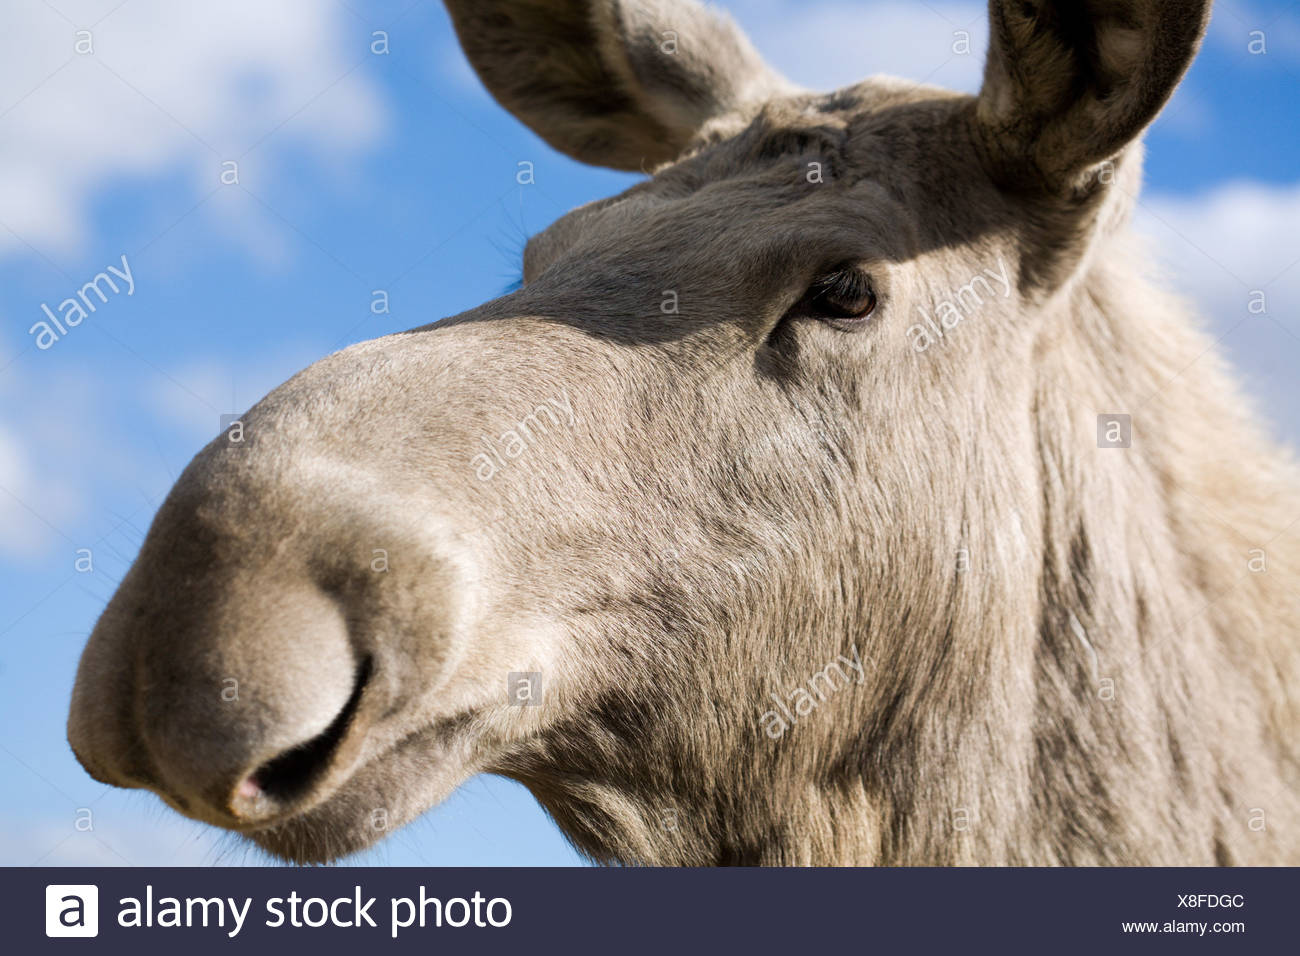 A moose, close-up, Sweden. - Stock Image